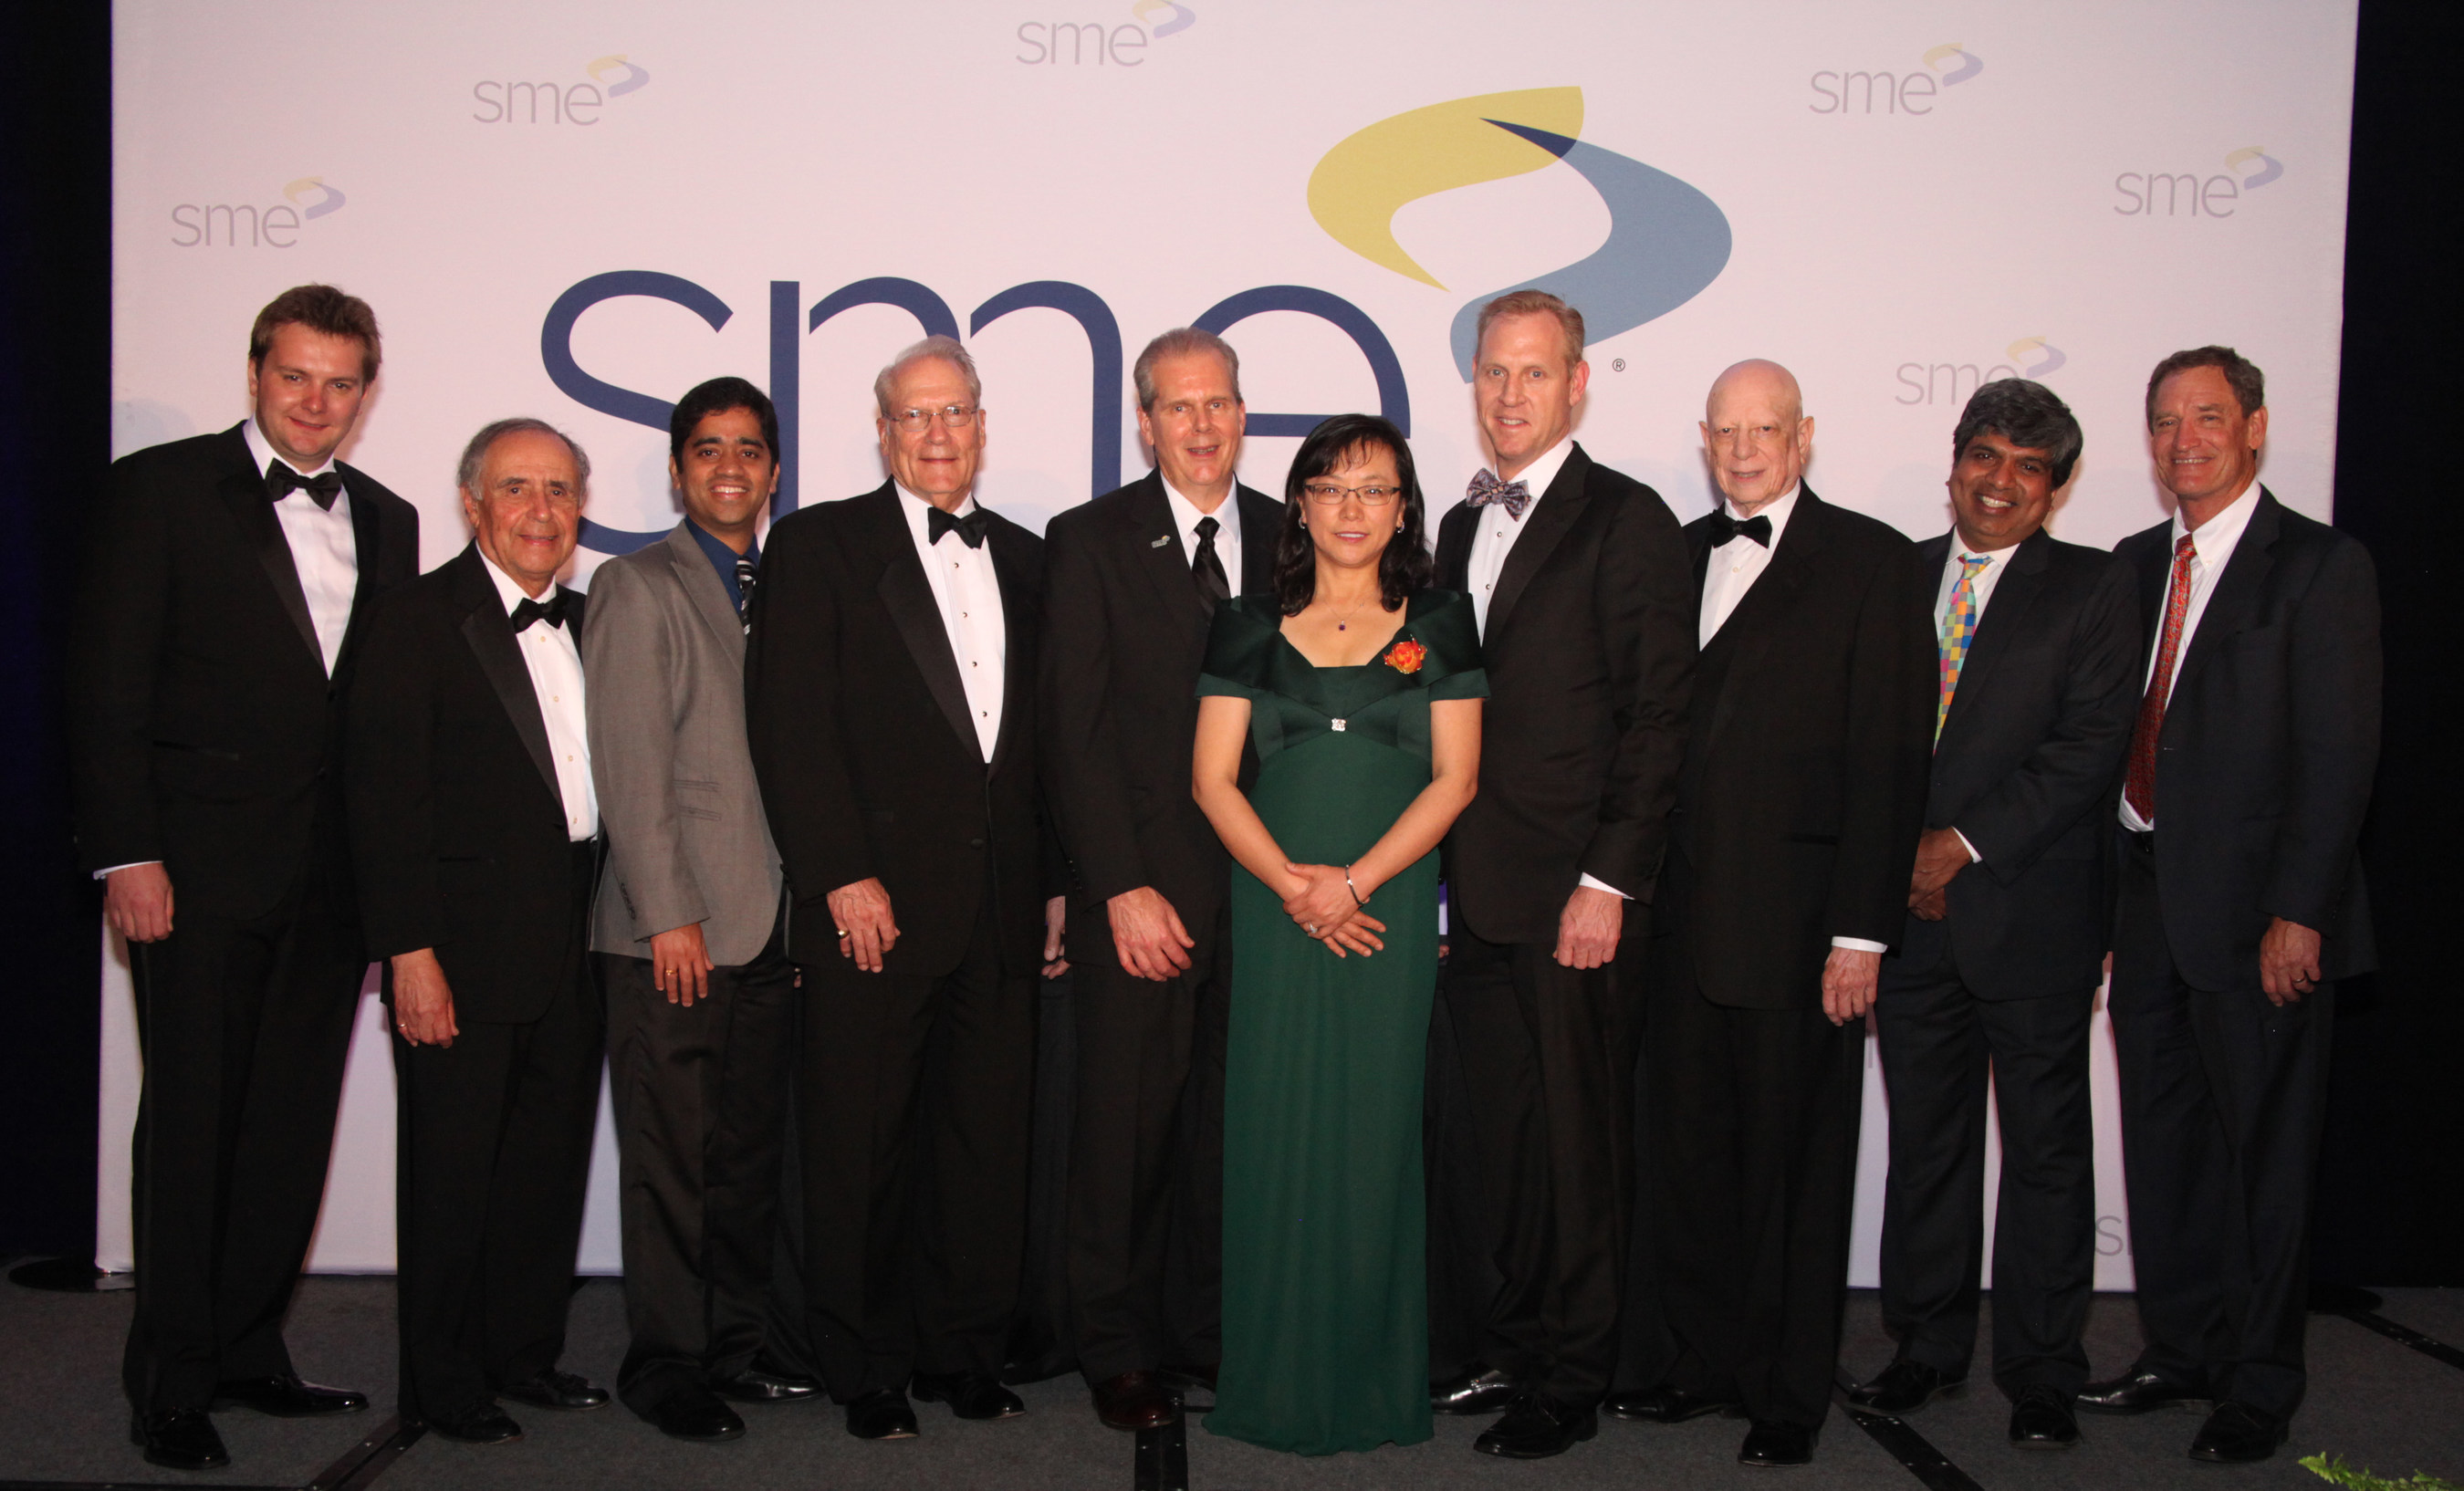 SME Gala Celebrates Manufacturing Leaders and Researchers